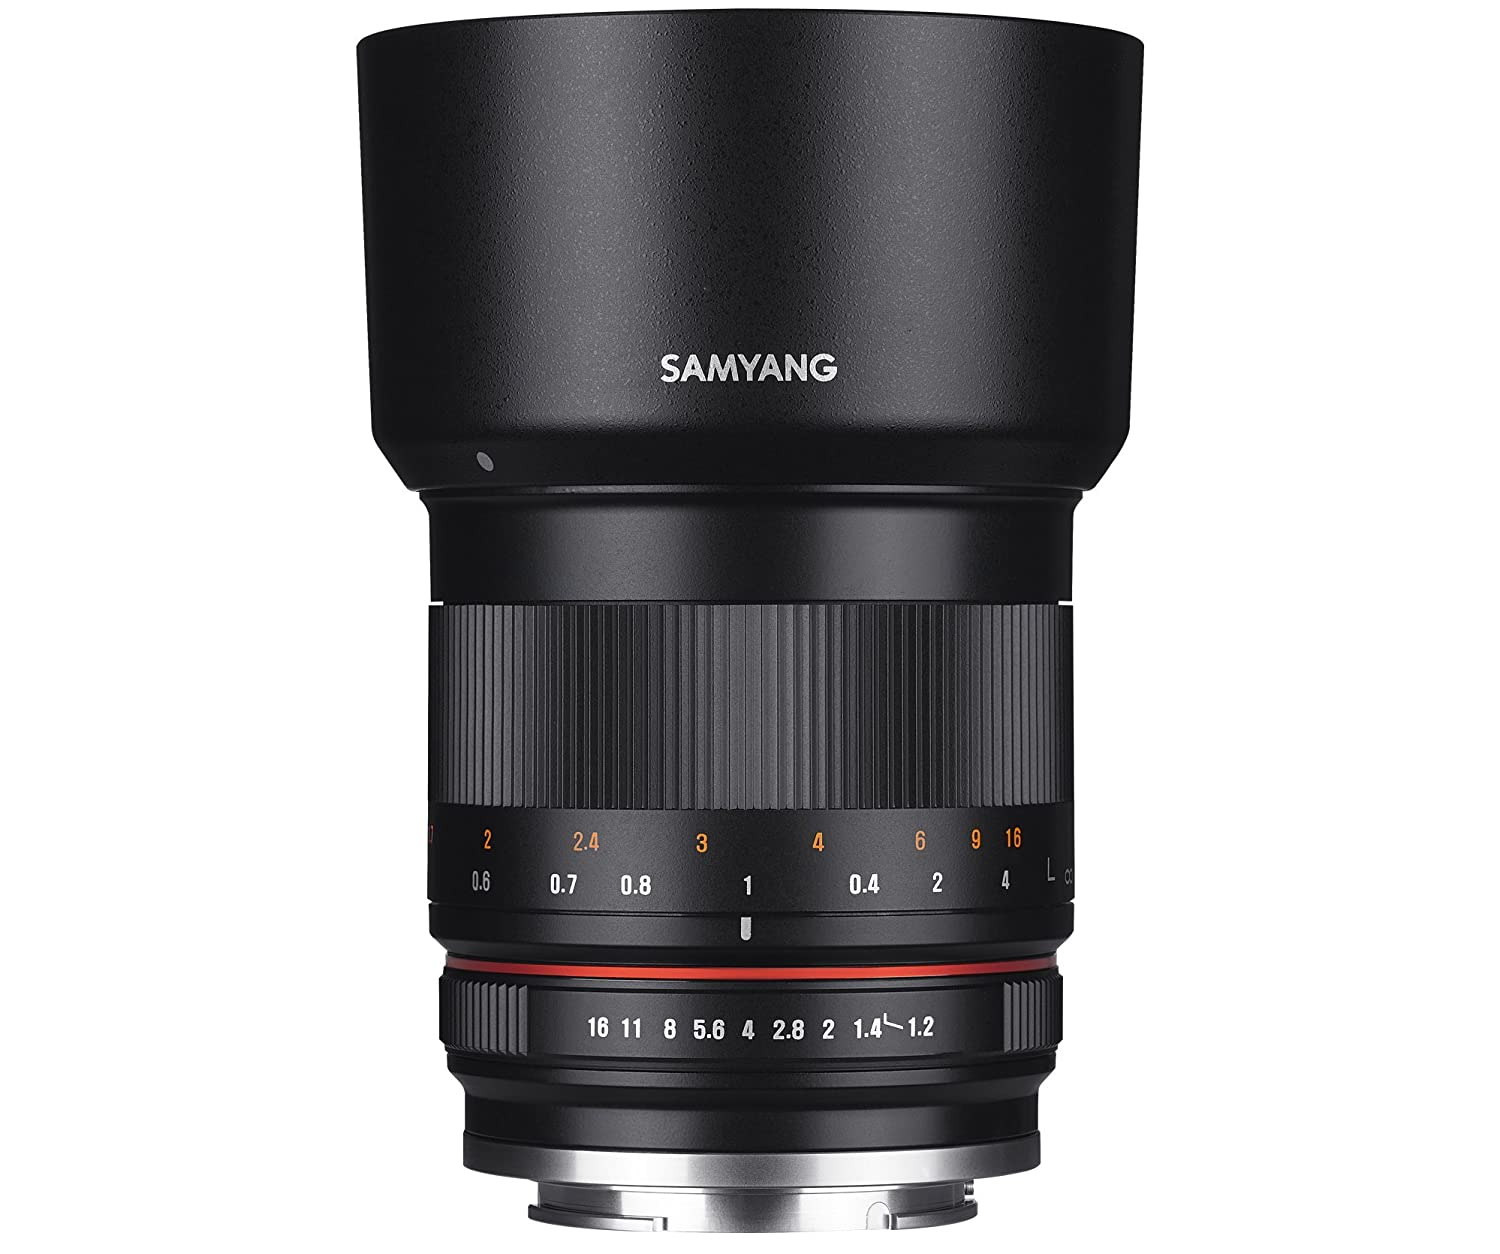 Samyang 50mm F1.2 AS UMC CS (MFT) [並行輸入品] MFT  B01FBUHEPC